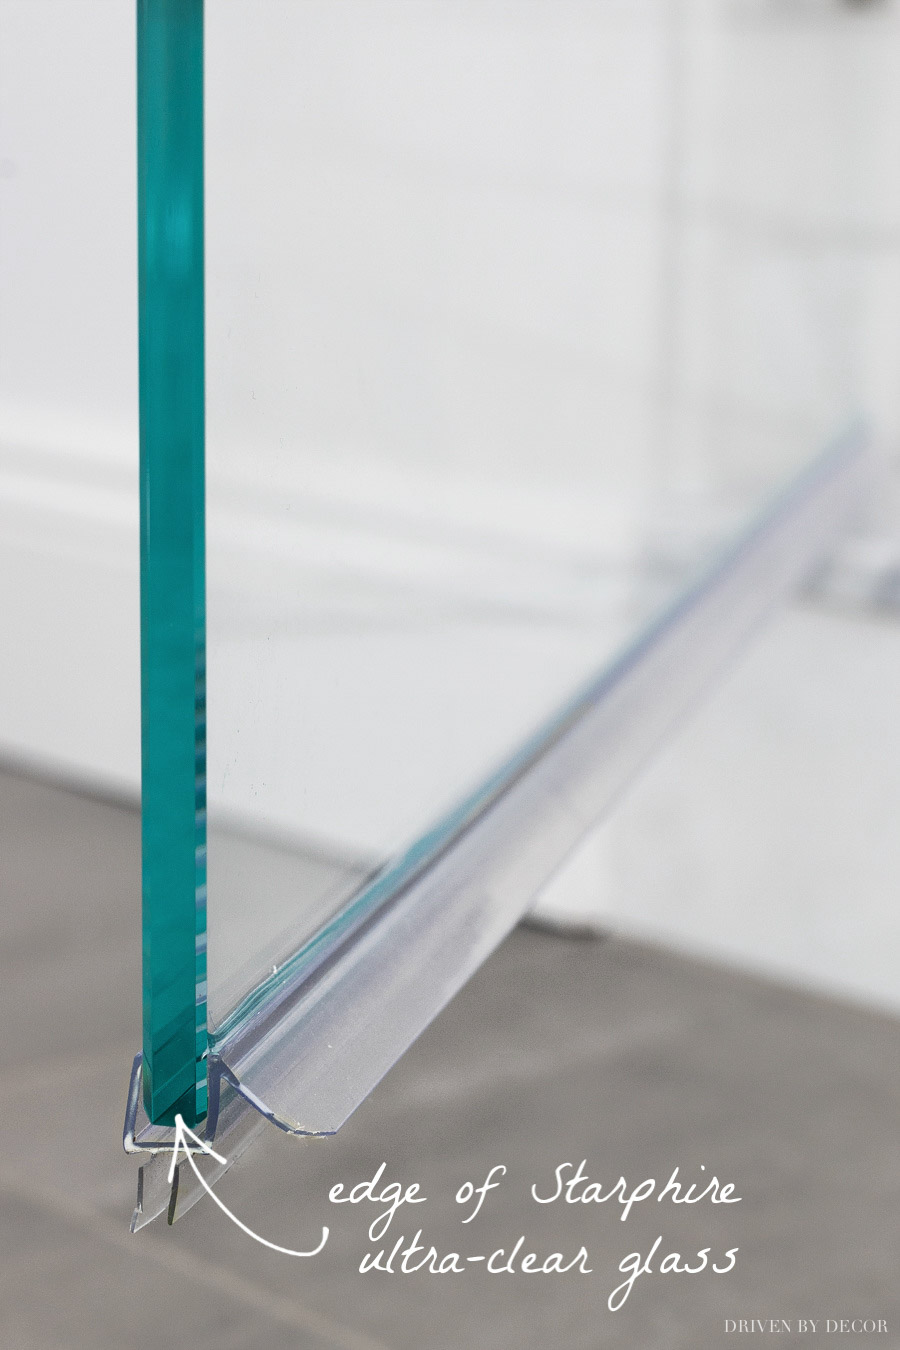 Great info on low-iron ultra-clear glass vs. regular glass!